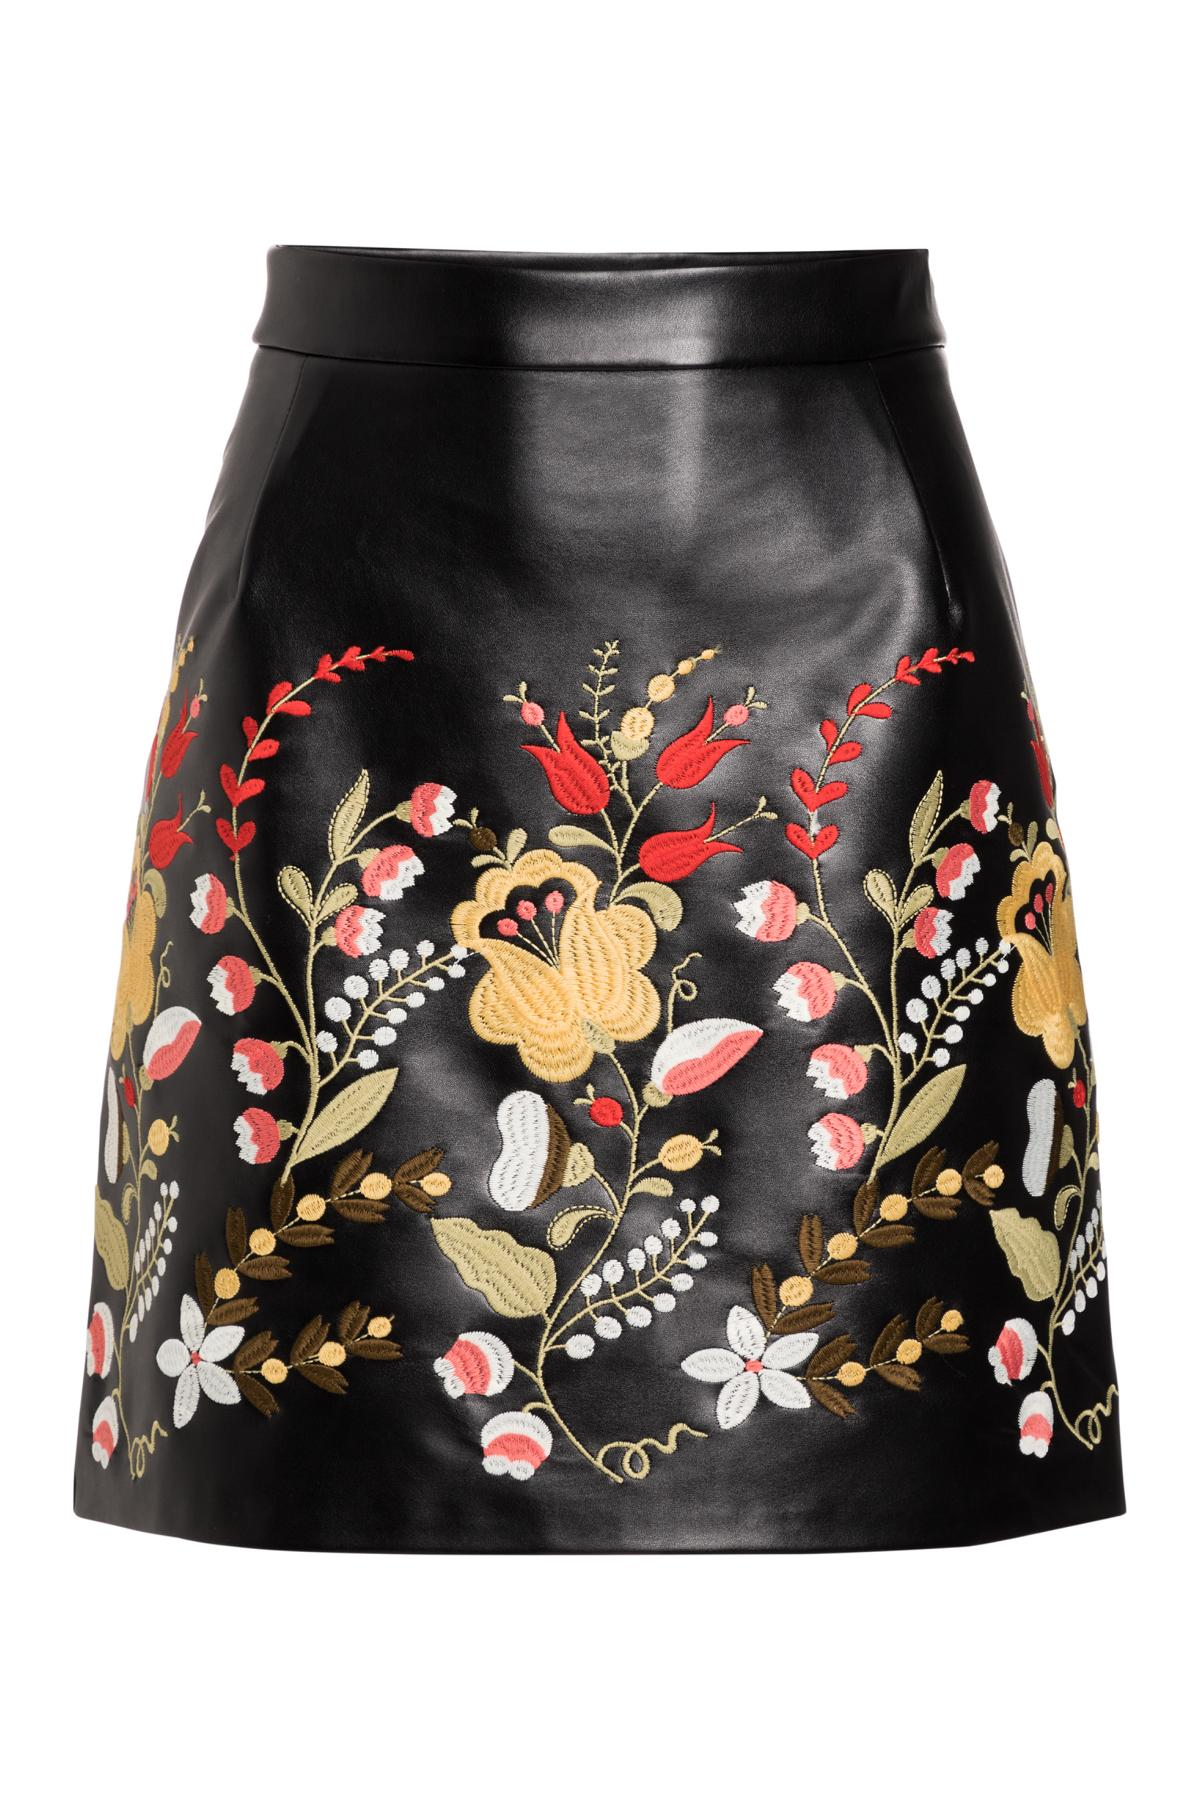 Ana Alcazar Mini Skirt Orinwe